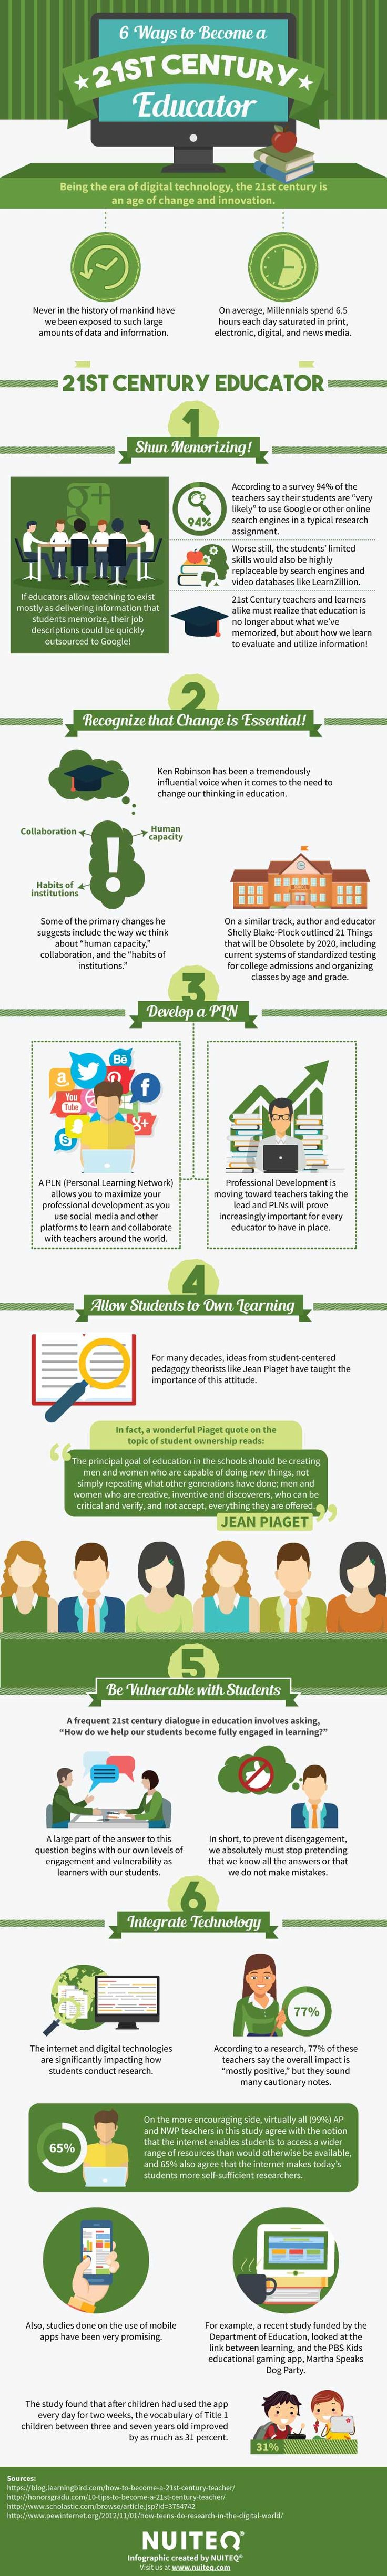 6 Ways to Become a 21st Century Teacher Infographic - http://elearninginfographics.com/6-ways-become-21st-century-teacher-infographic/